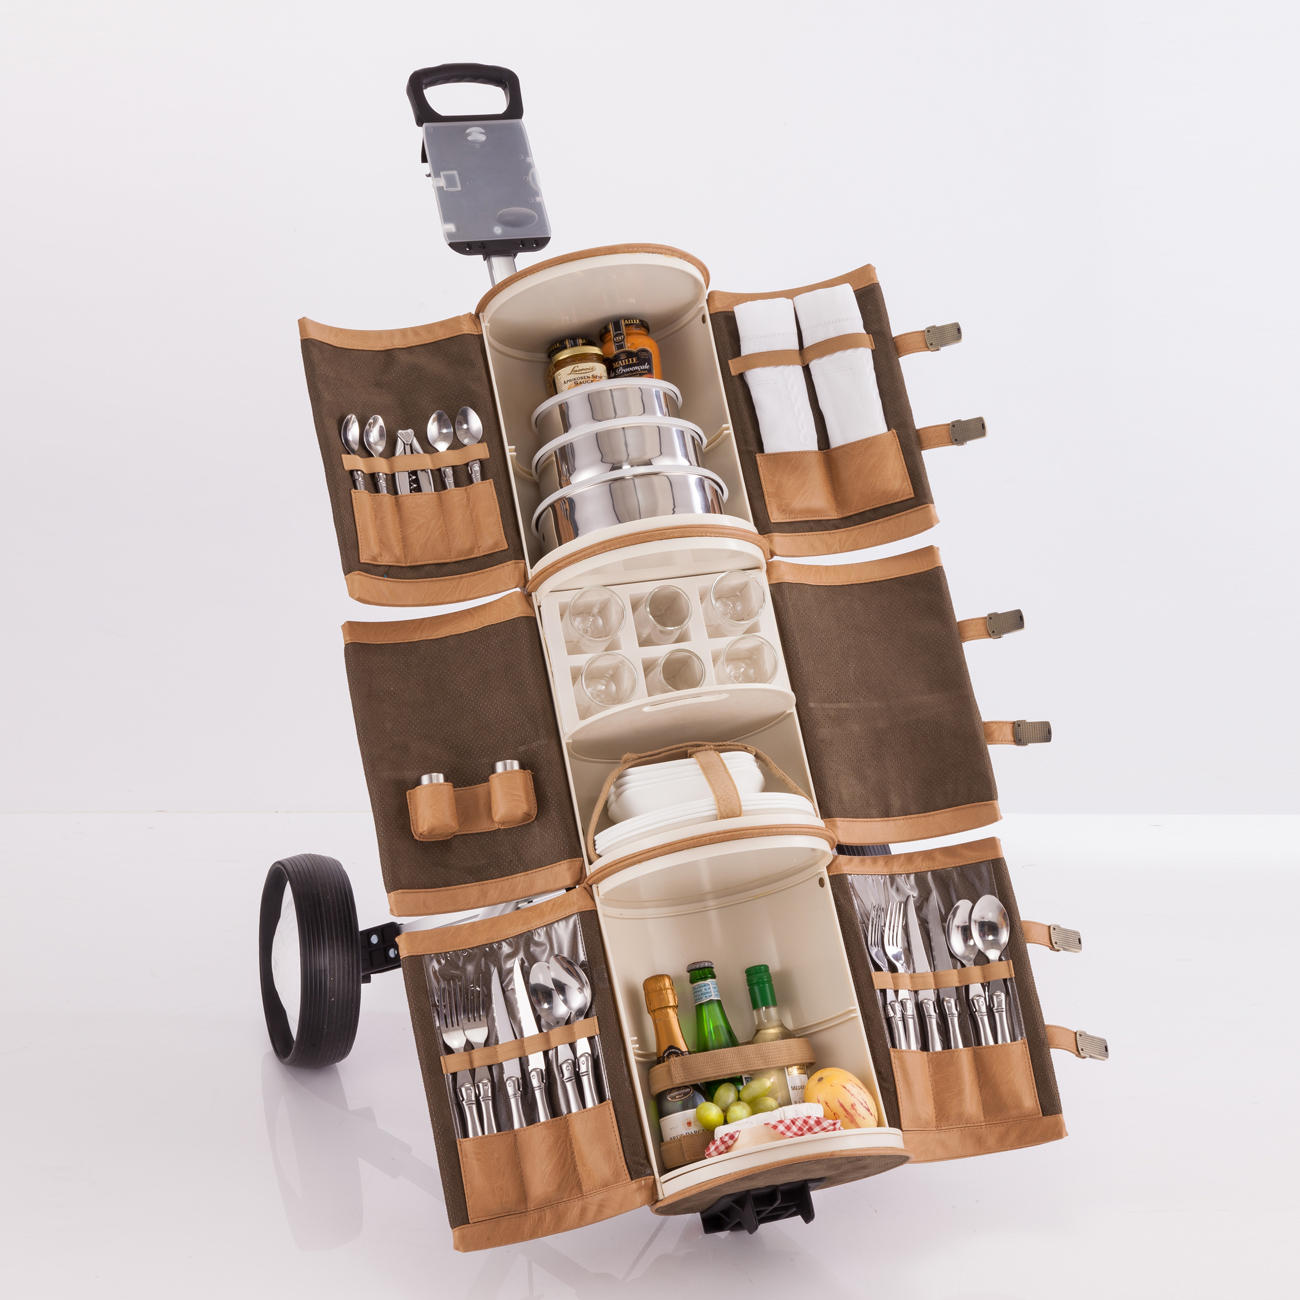 Make Your Picnic Posh With The Picnic Trolley